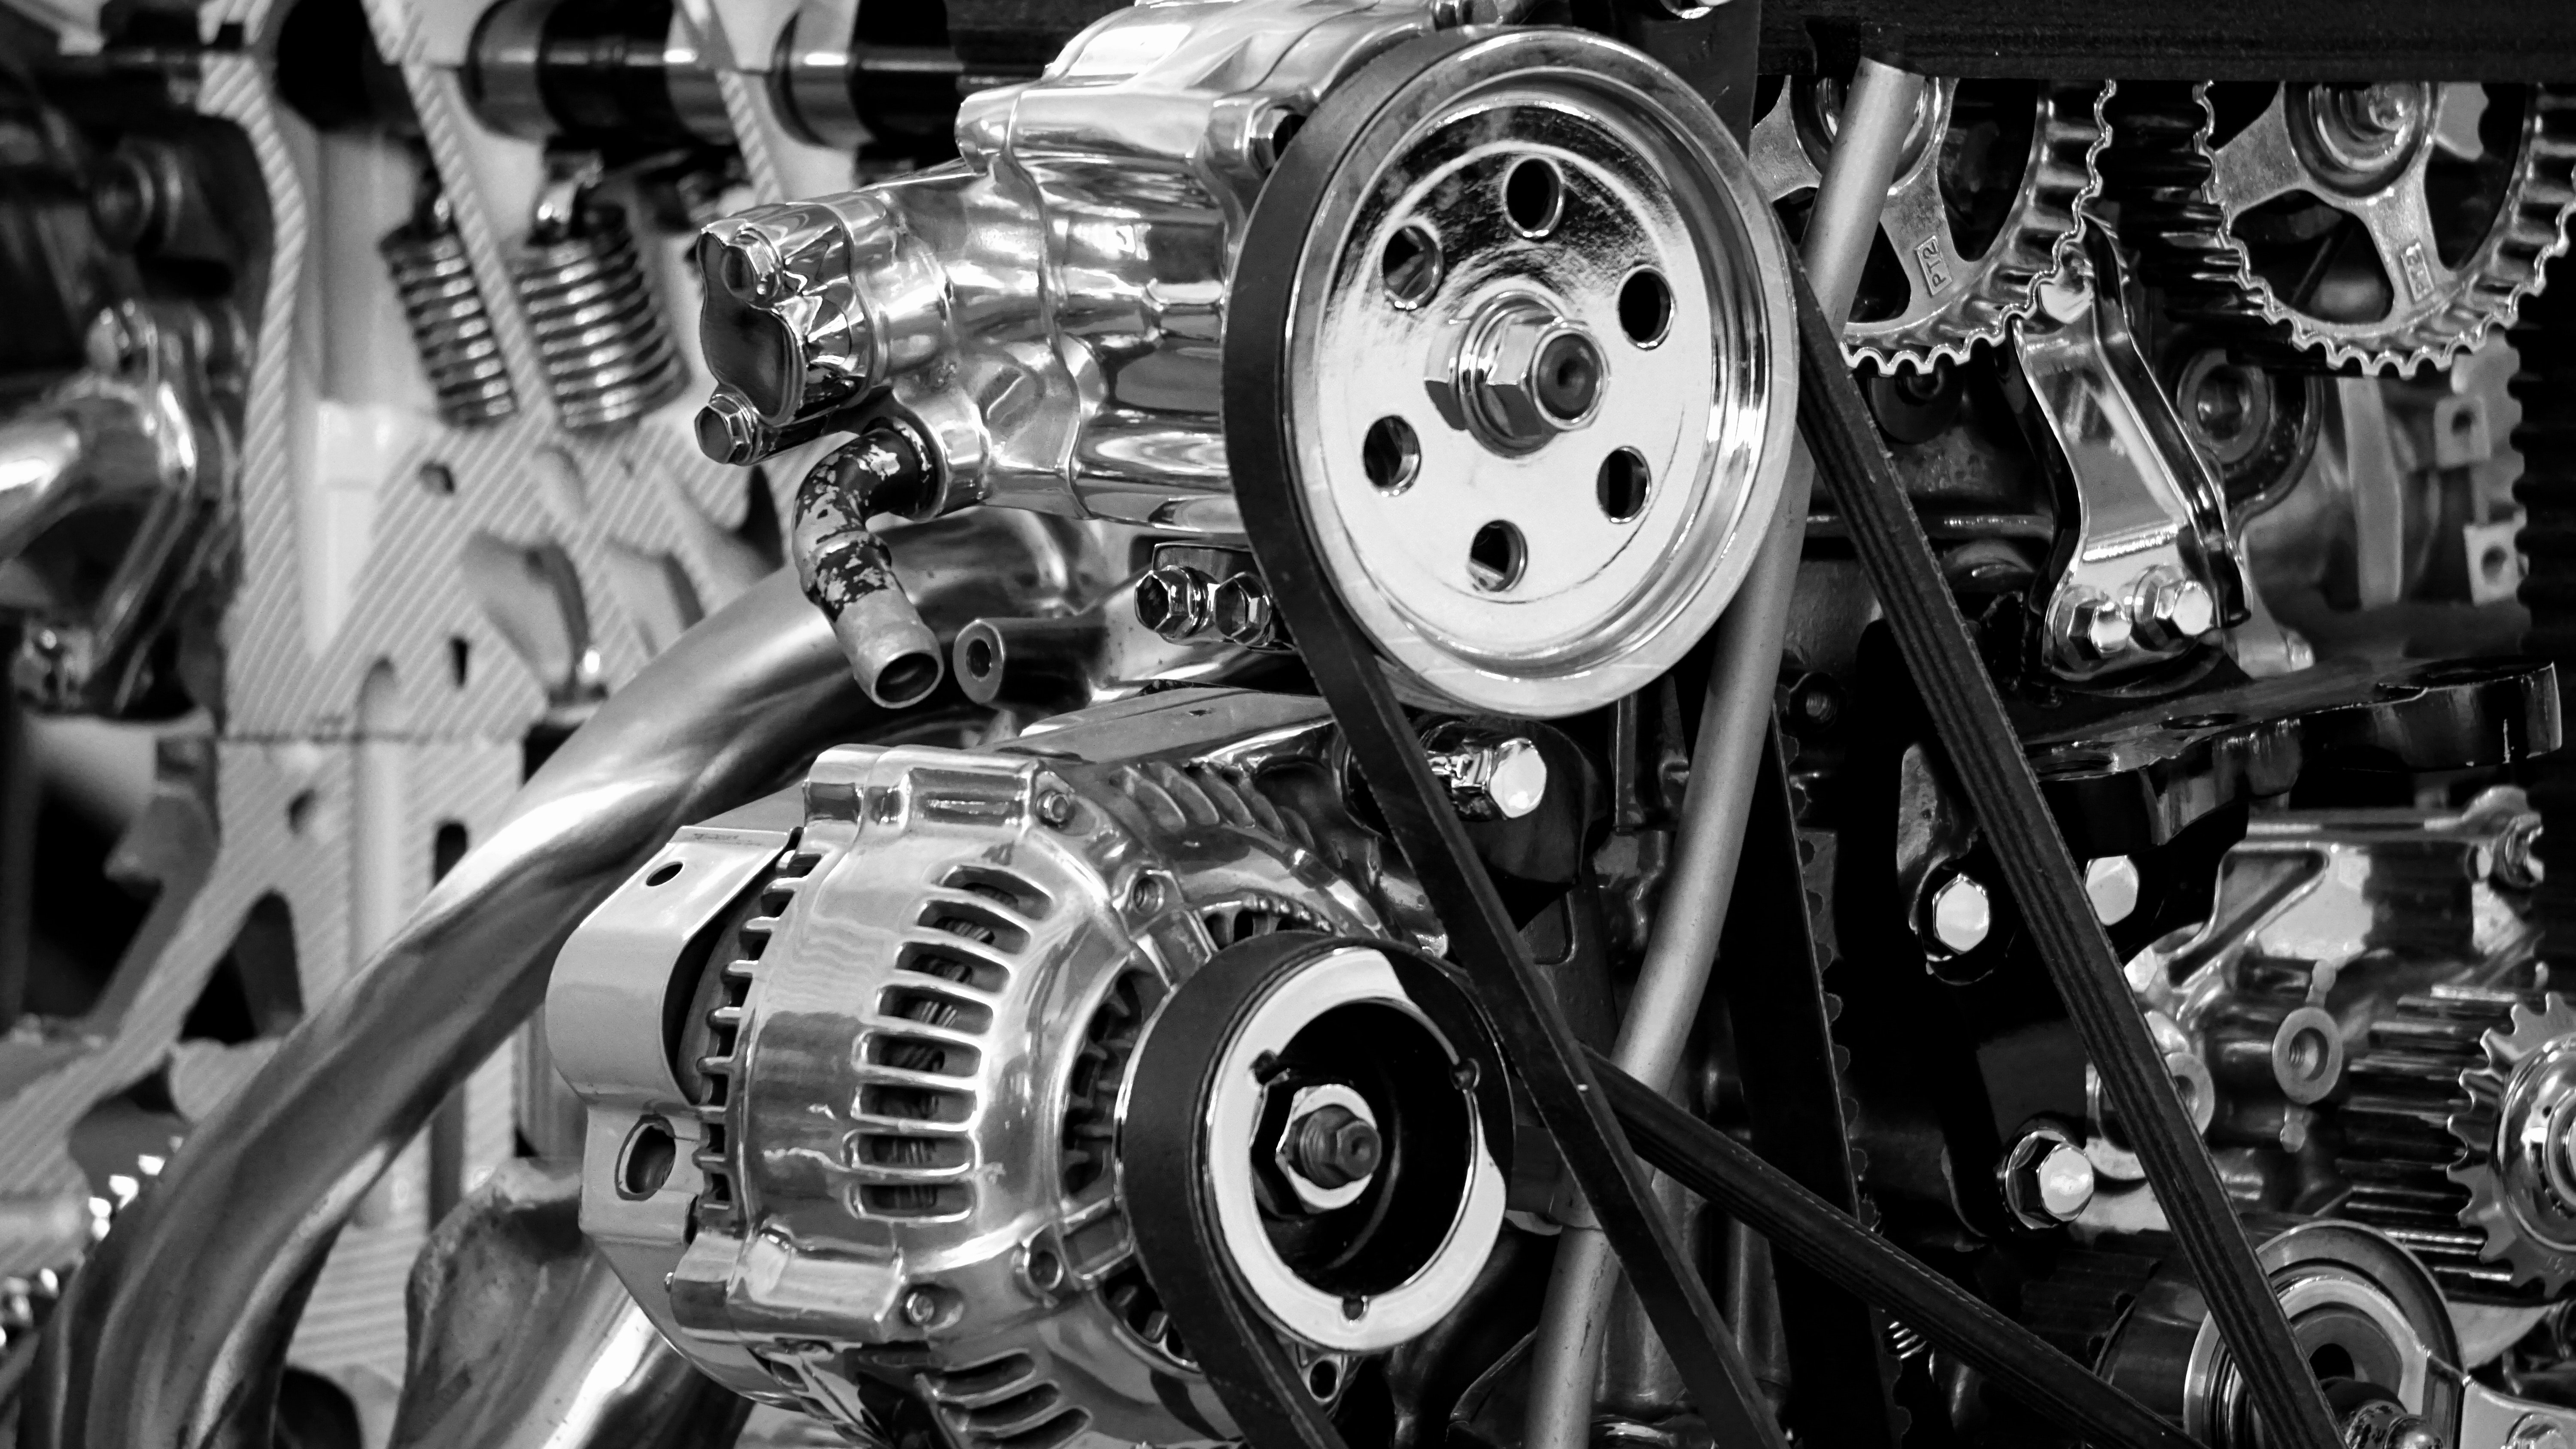 Free Photo Greyscale Photography Of Car Engine Metal Shiny Power Free Download Jooinn